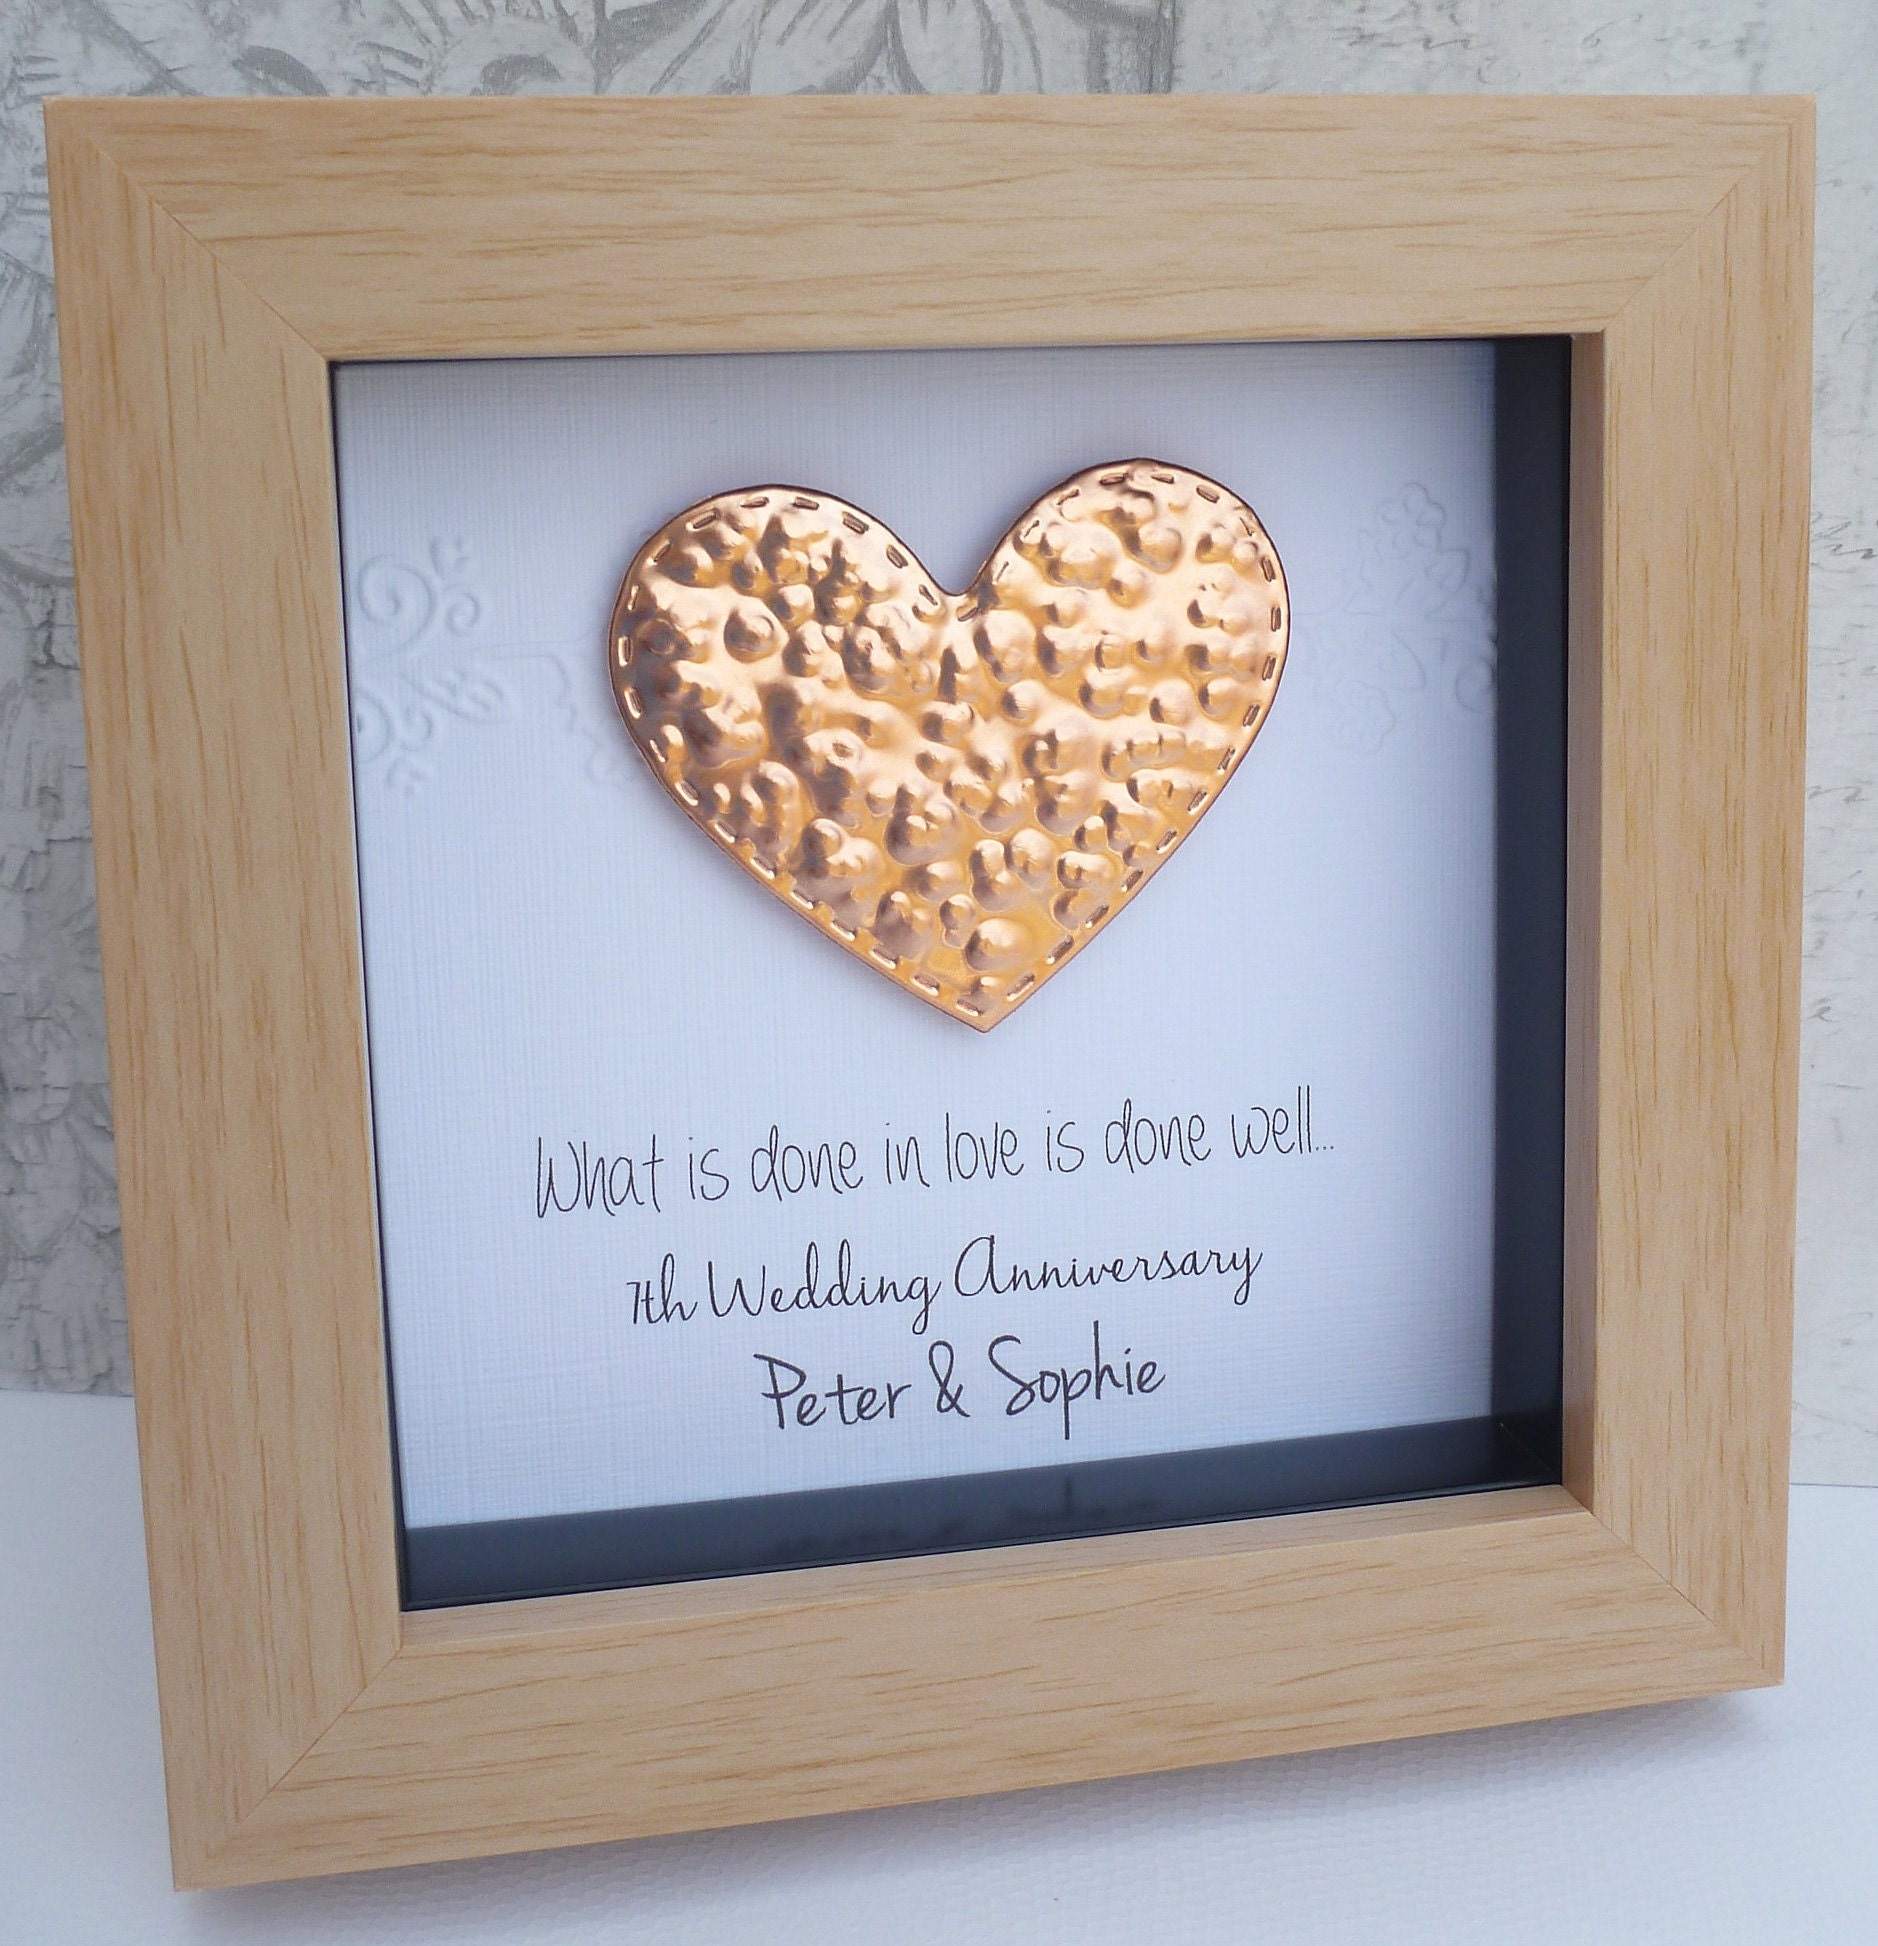 Gift For 7th Wedding Anniversary: Copper Anniversary Gift 7th Wedding Anniversary Gift 7th